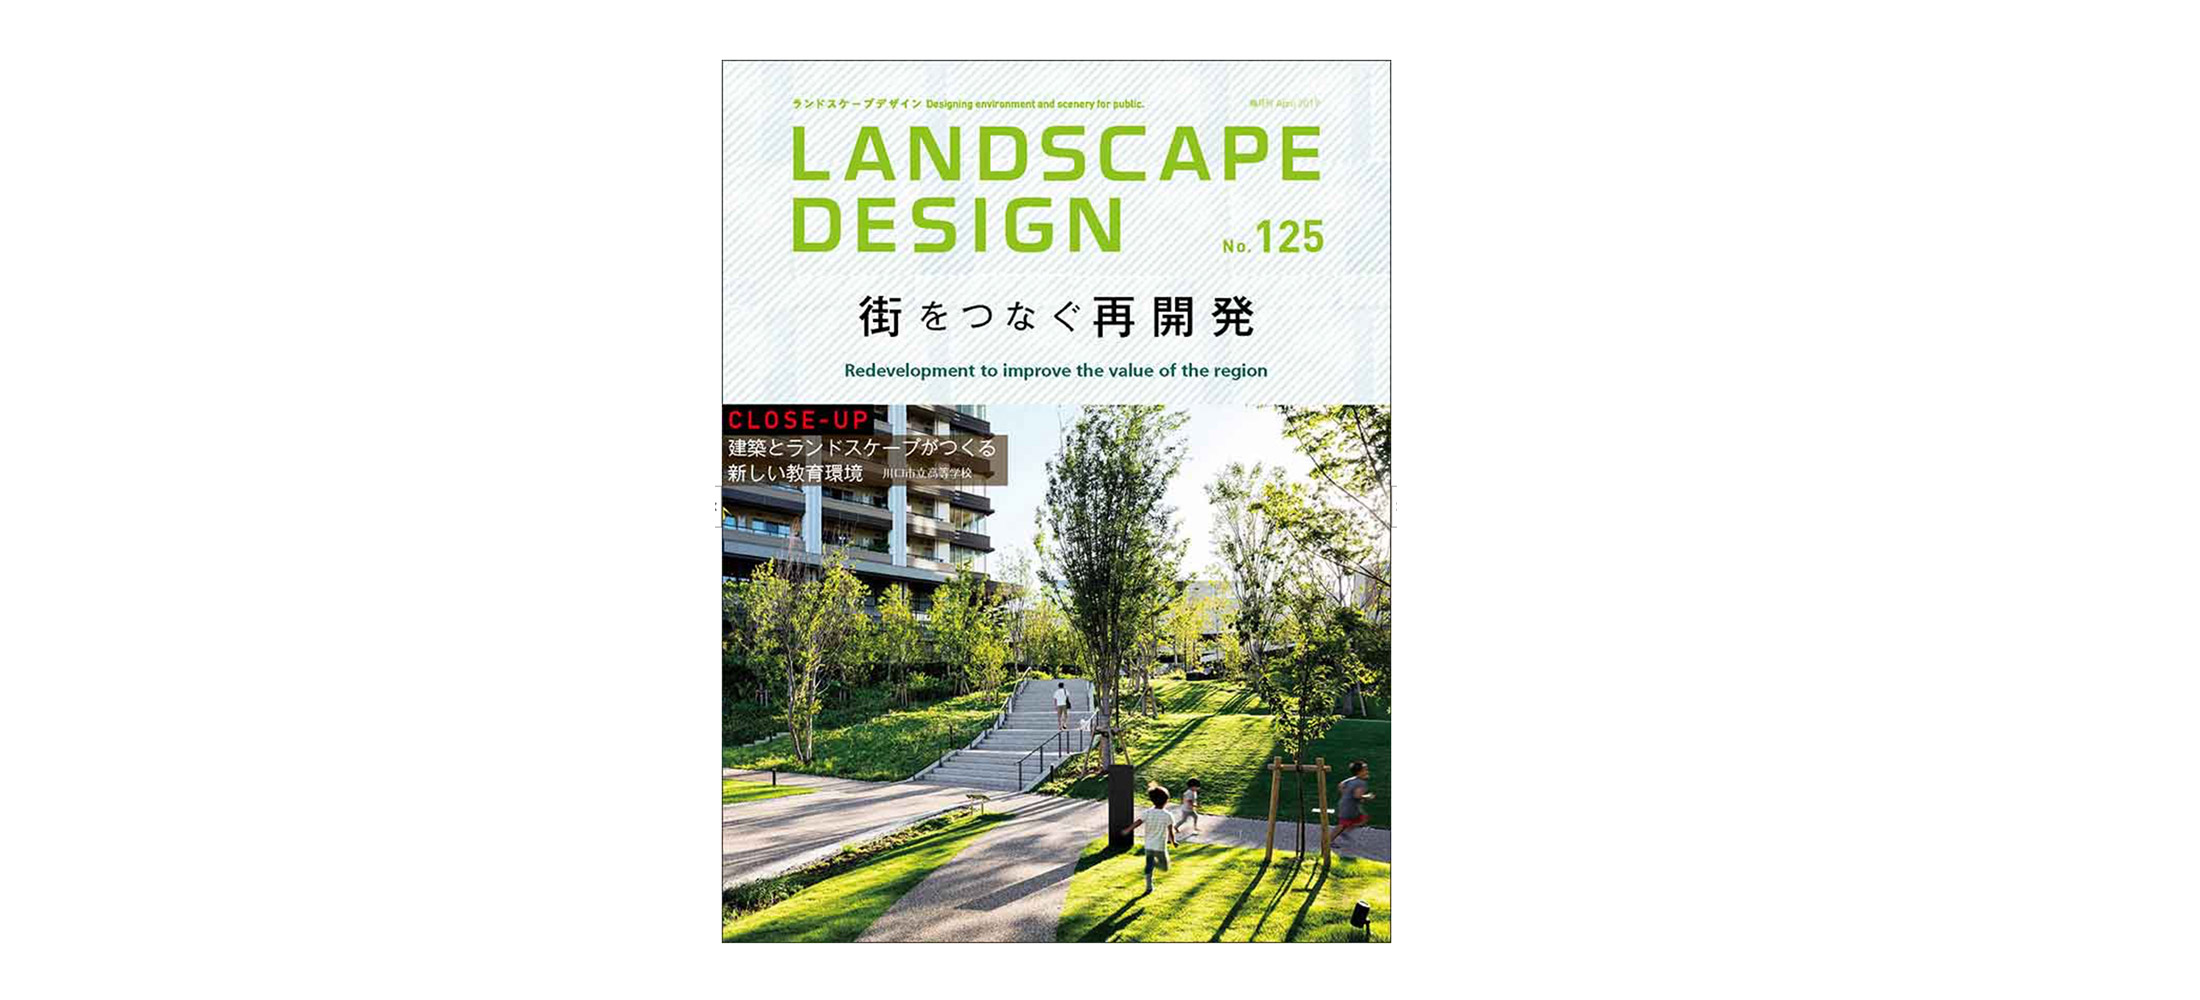 LANDSCAPE DESIGN No.125掲載